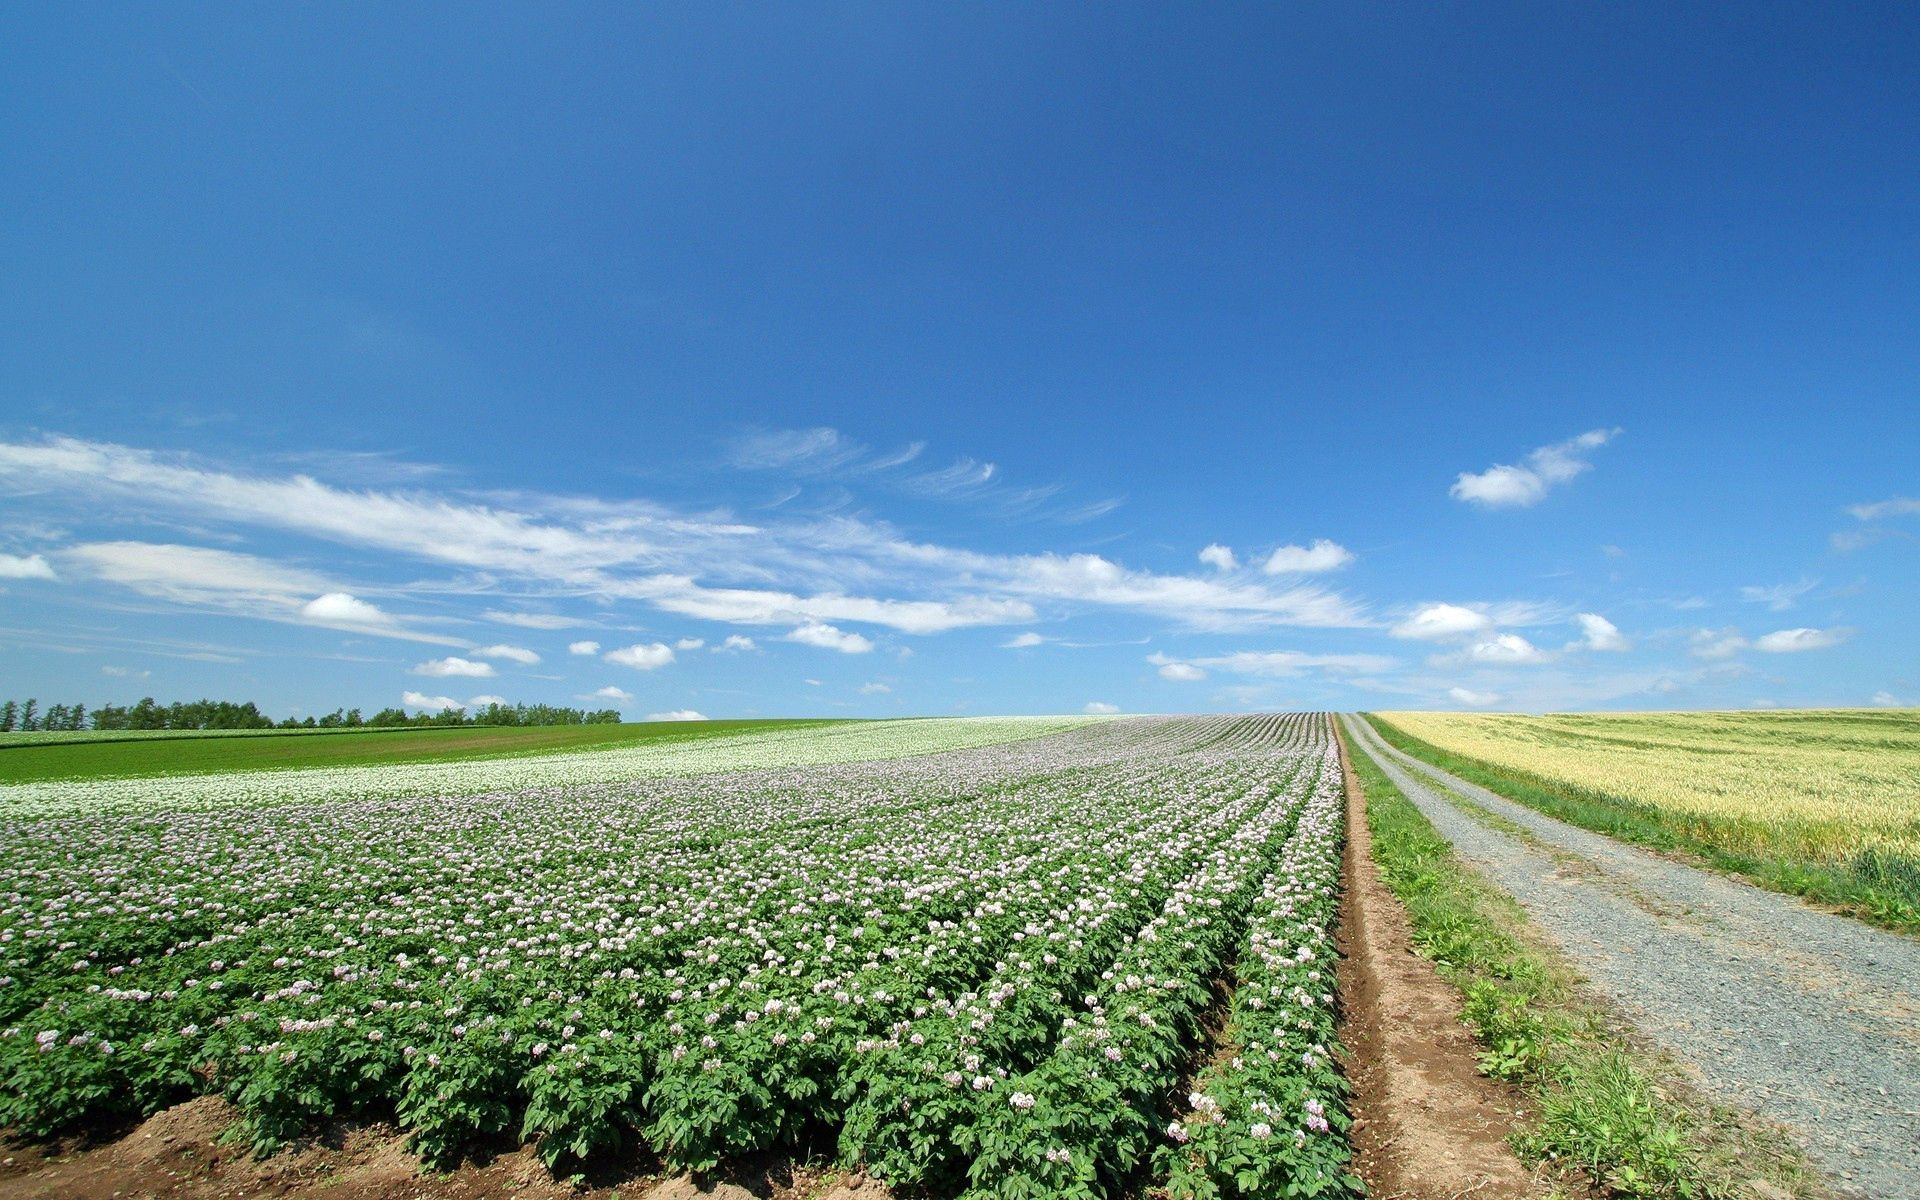 138717 download wallpaper Nature, Field, Plantation, Agriculture screensavers and pictures for free